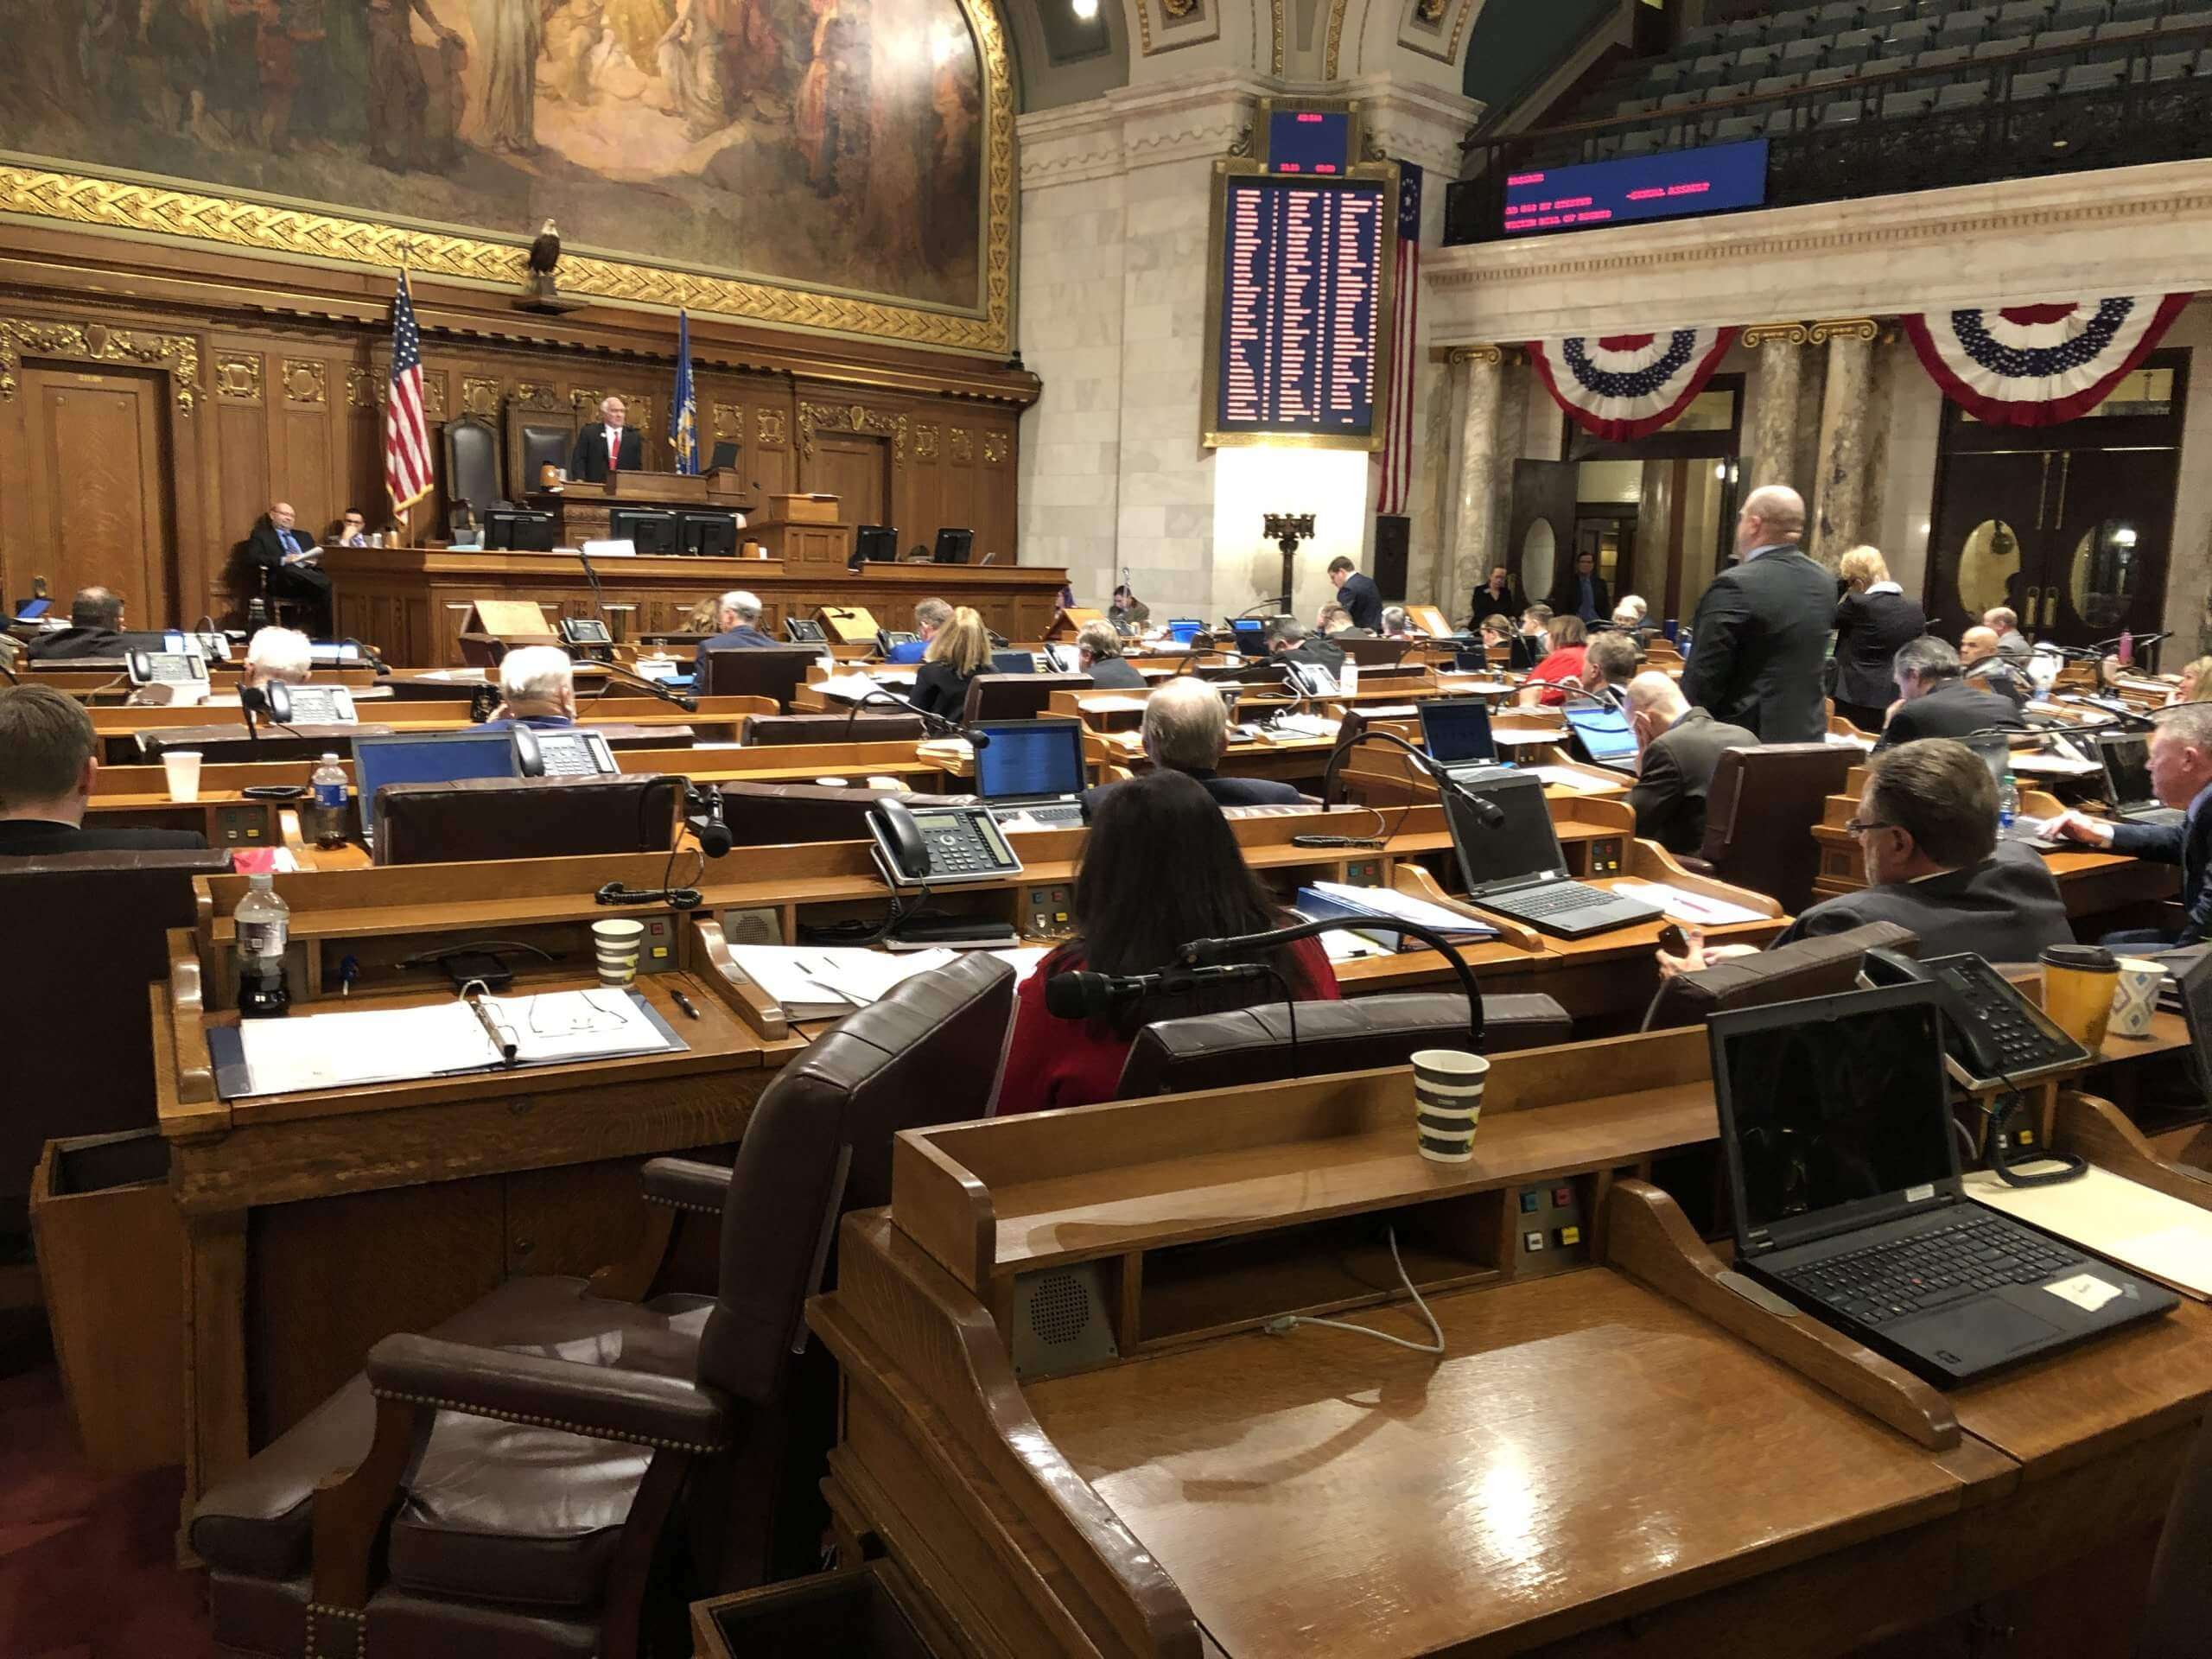 During a 2/11/20 debate on bills to prevent a rape kit backlog many Republican seats (left side of Assembly floor) sit empty with no GOP leaders present. Photo by Melanie Conklin/Wisconsin Examiner.